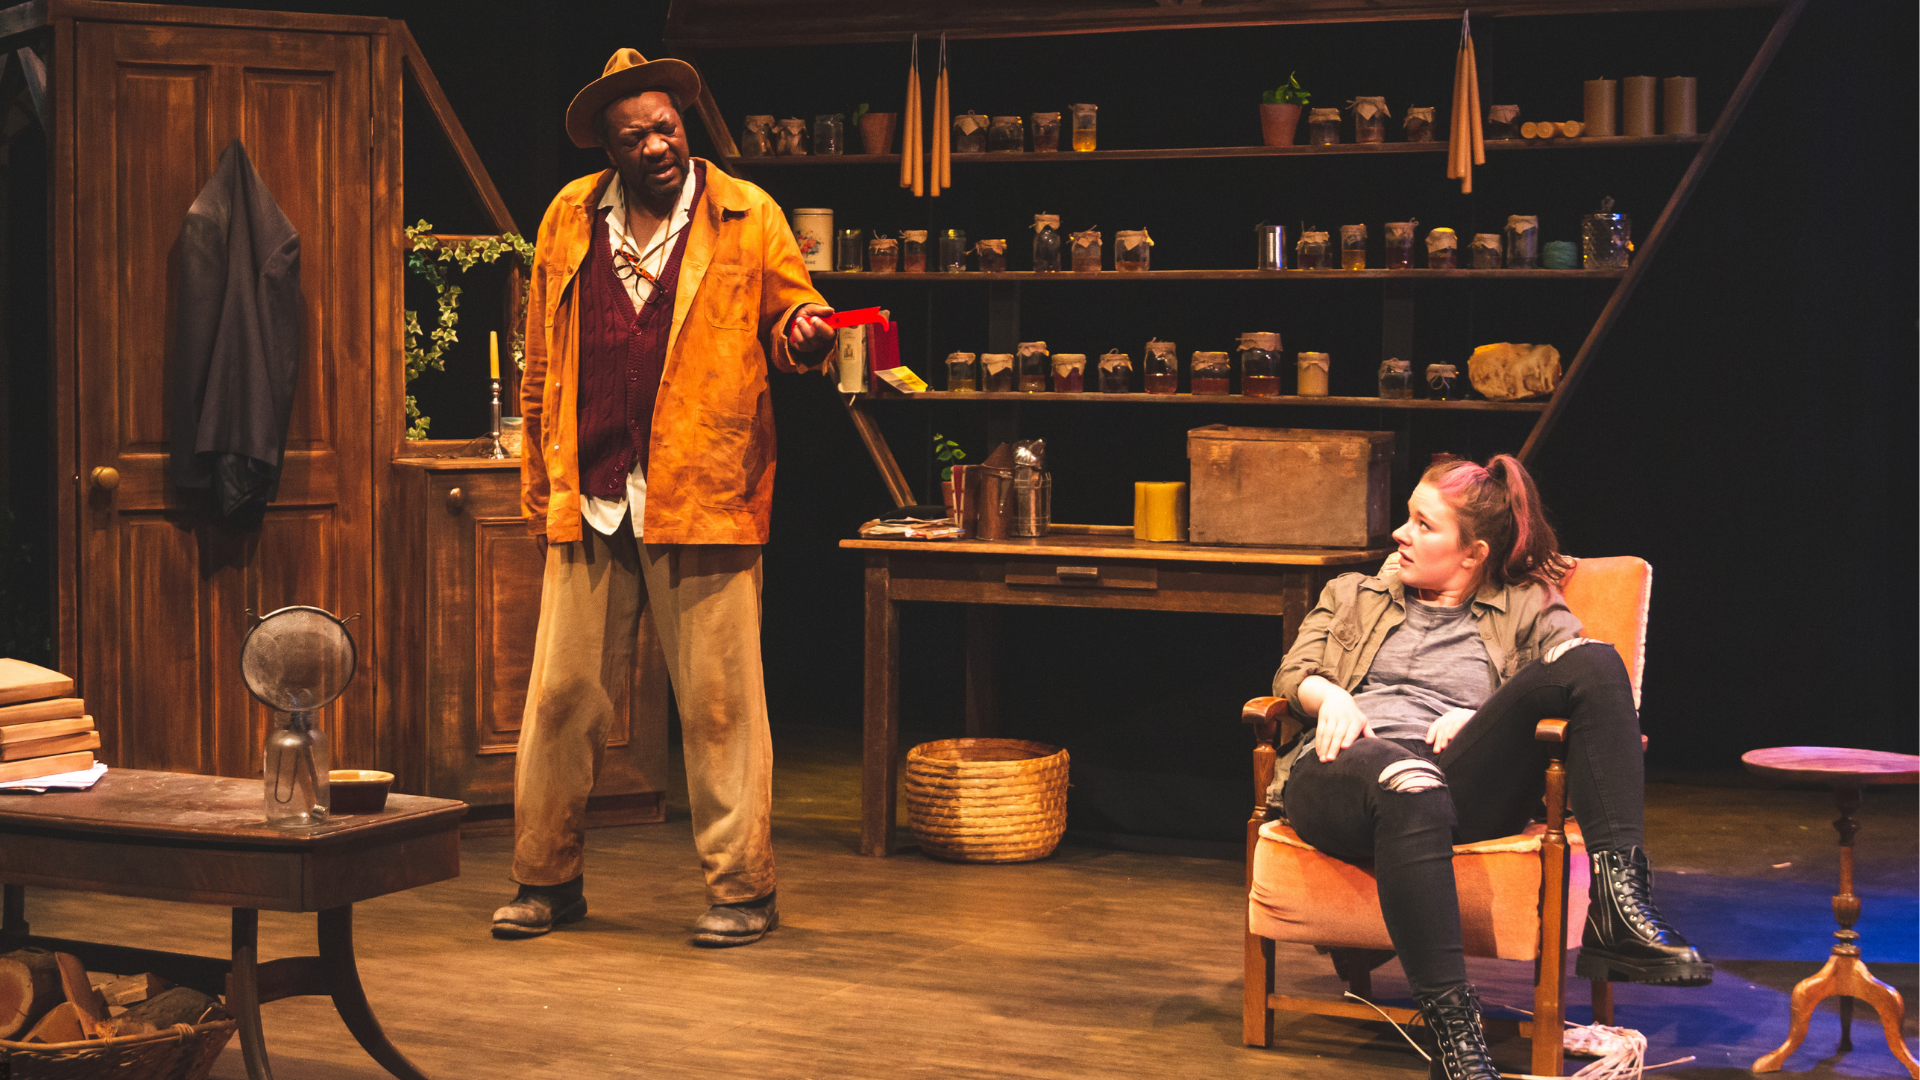 The Honey Man Production Photo: Inside Honey Man's house, Misty (Amy Kennedy) sits in an armchair, her leg slung over the arm rest, as Honey Man (Everal Walsh) stands next to her